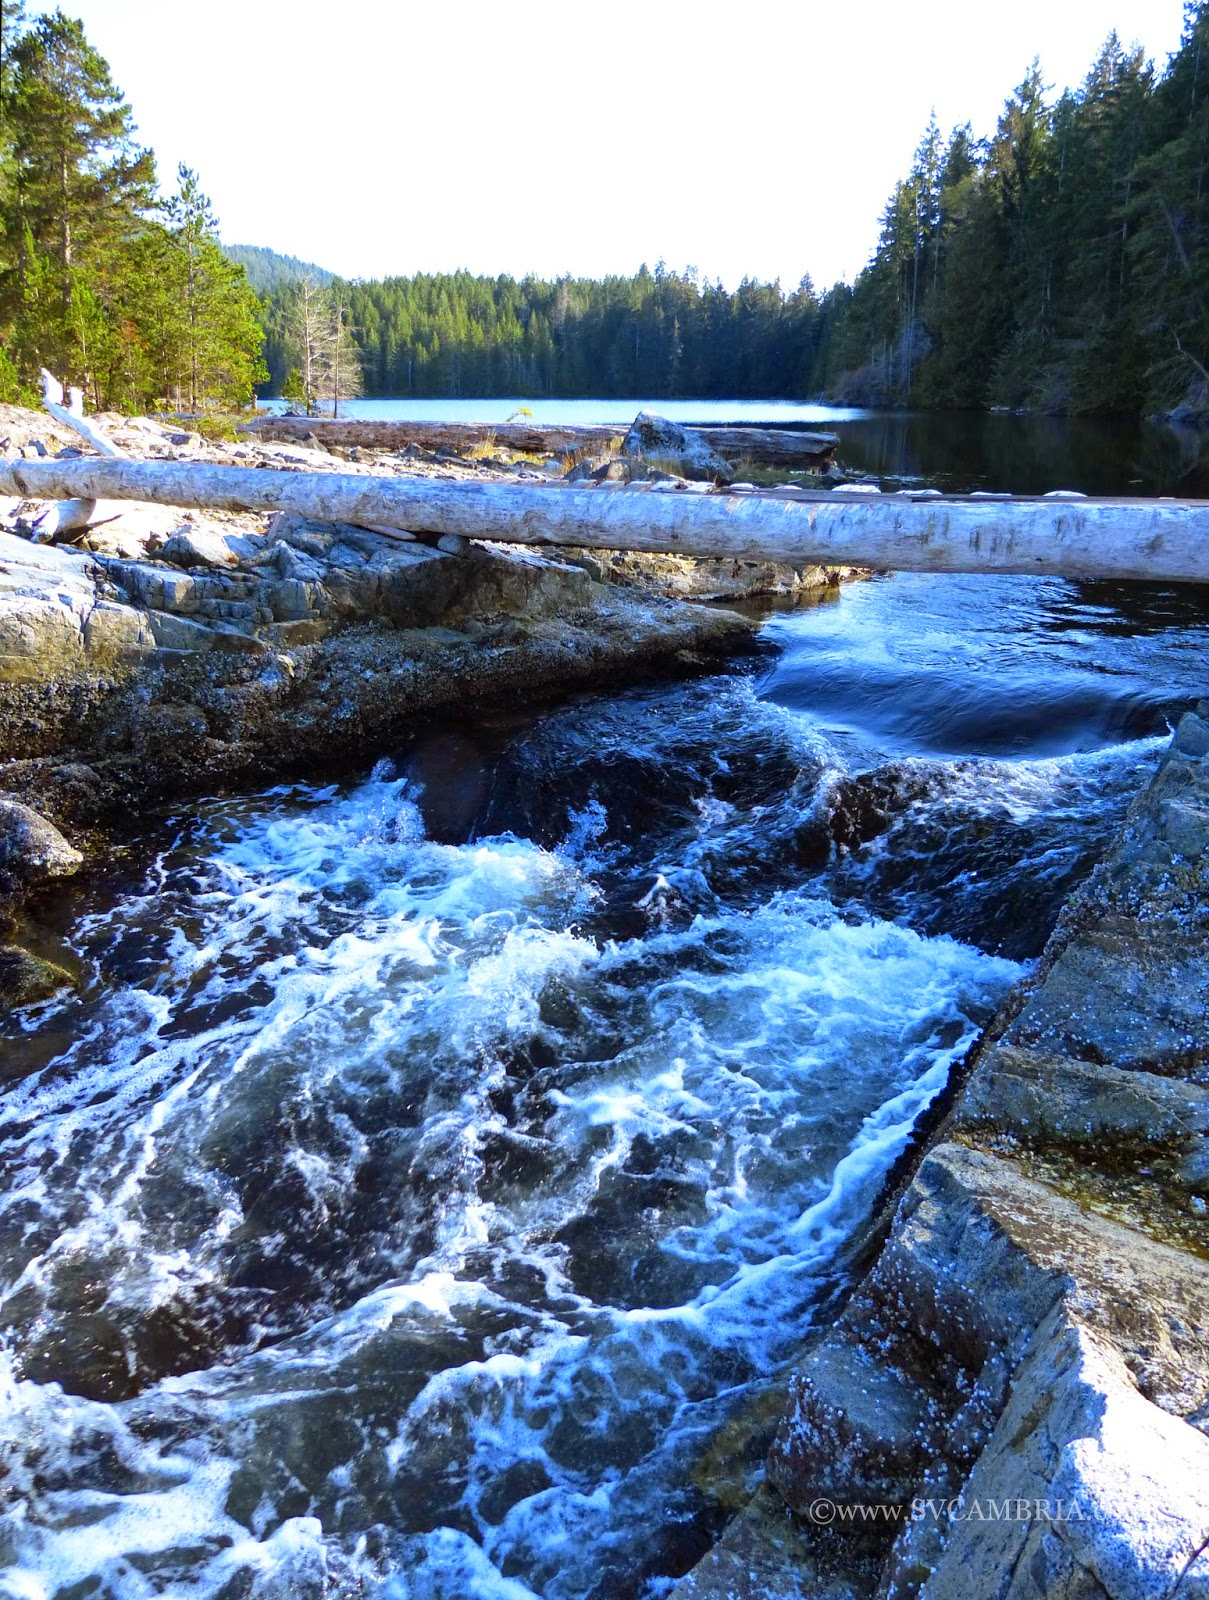 The rapids at the lagoon entrance in Carrington Bay, Cortes Island.